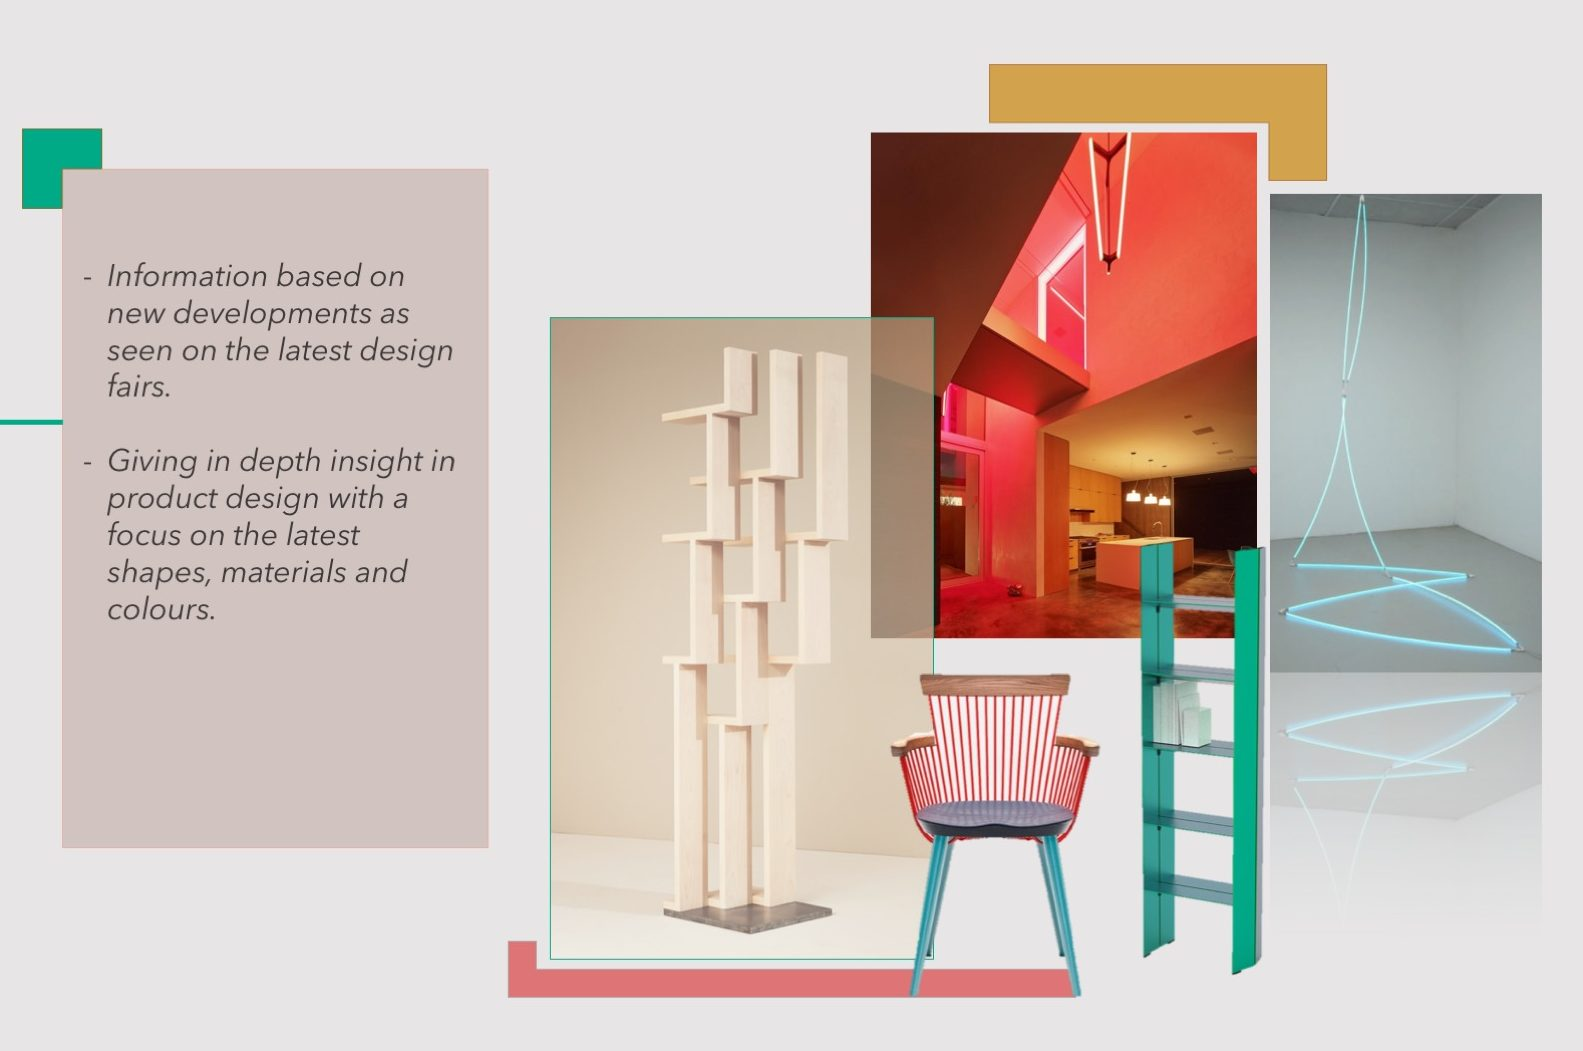 Information based on new developments as seen on the latest design fairs. Giving in depth insight in product design with a focus on the latest shapes, materials and colours.